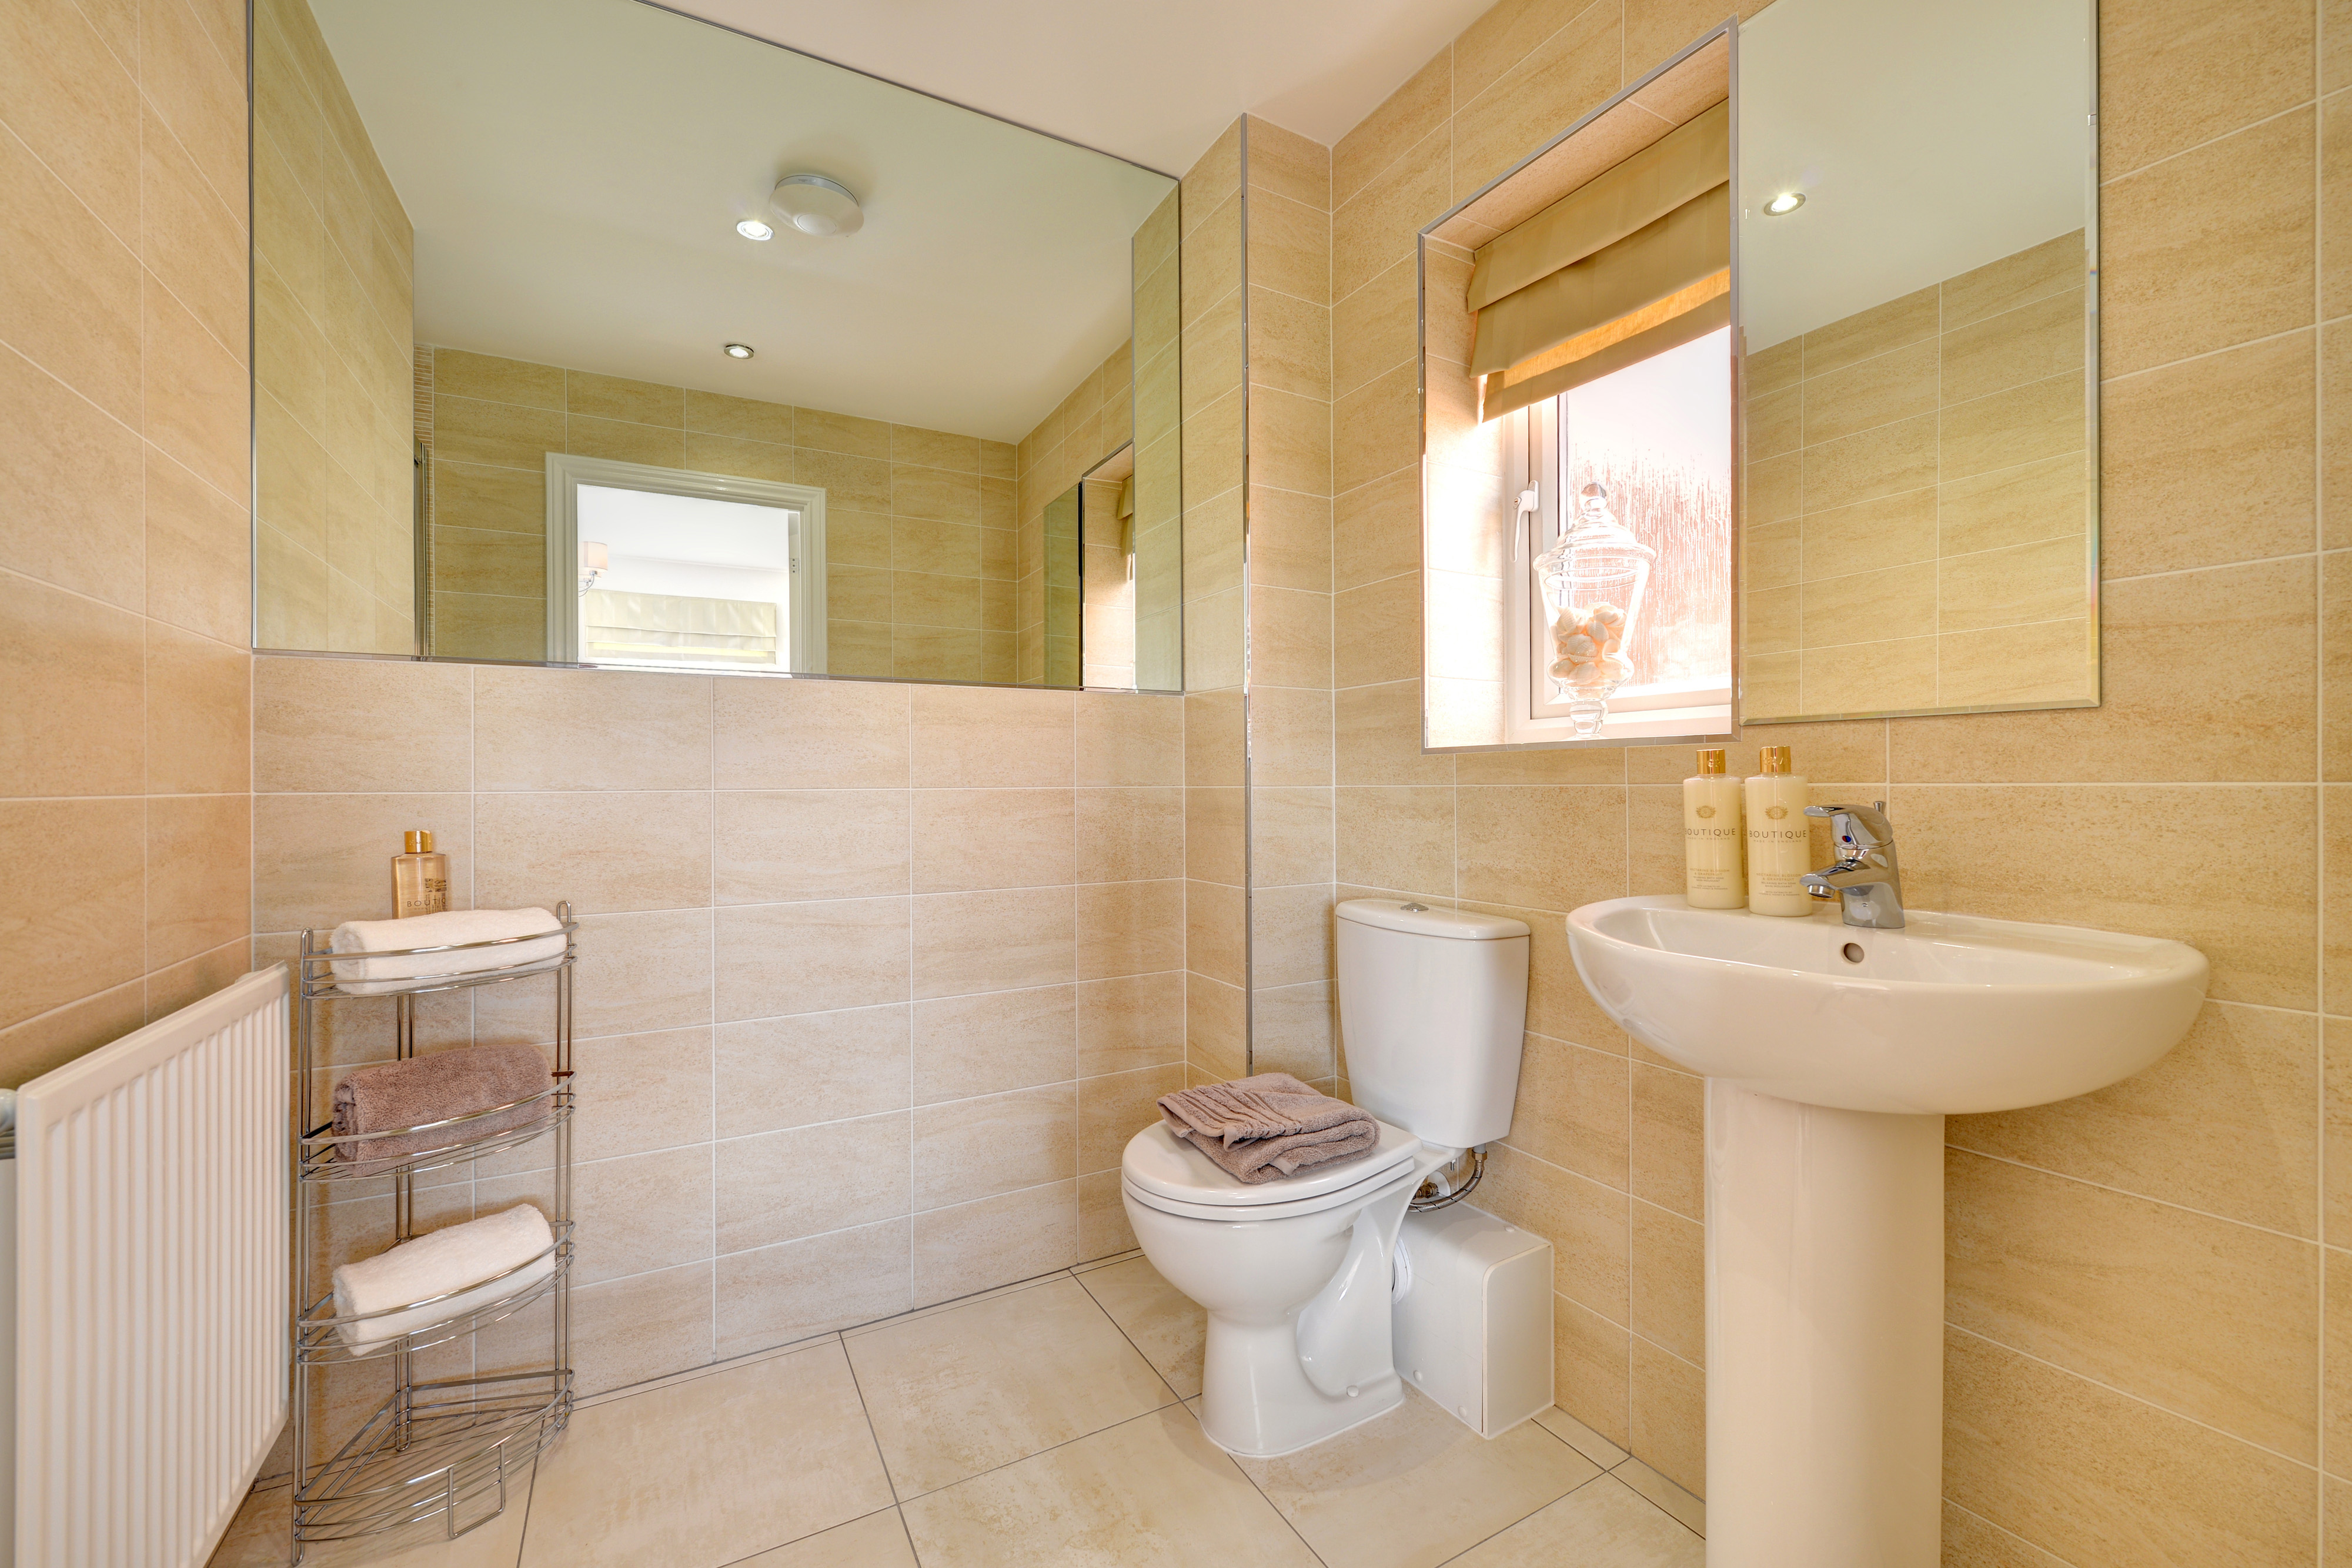 twne_maples_eynsham en suite